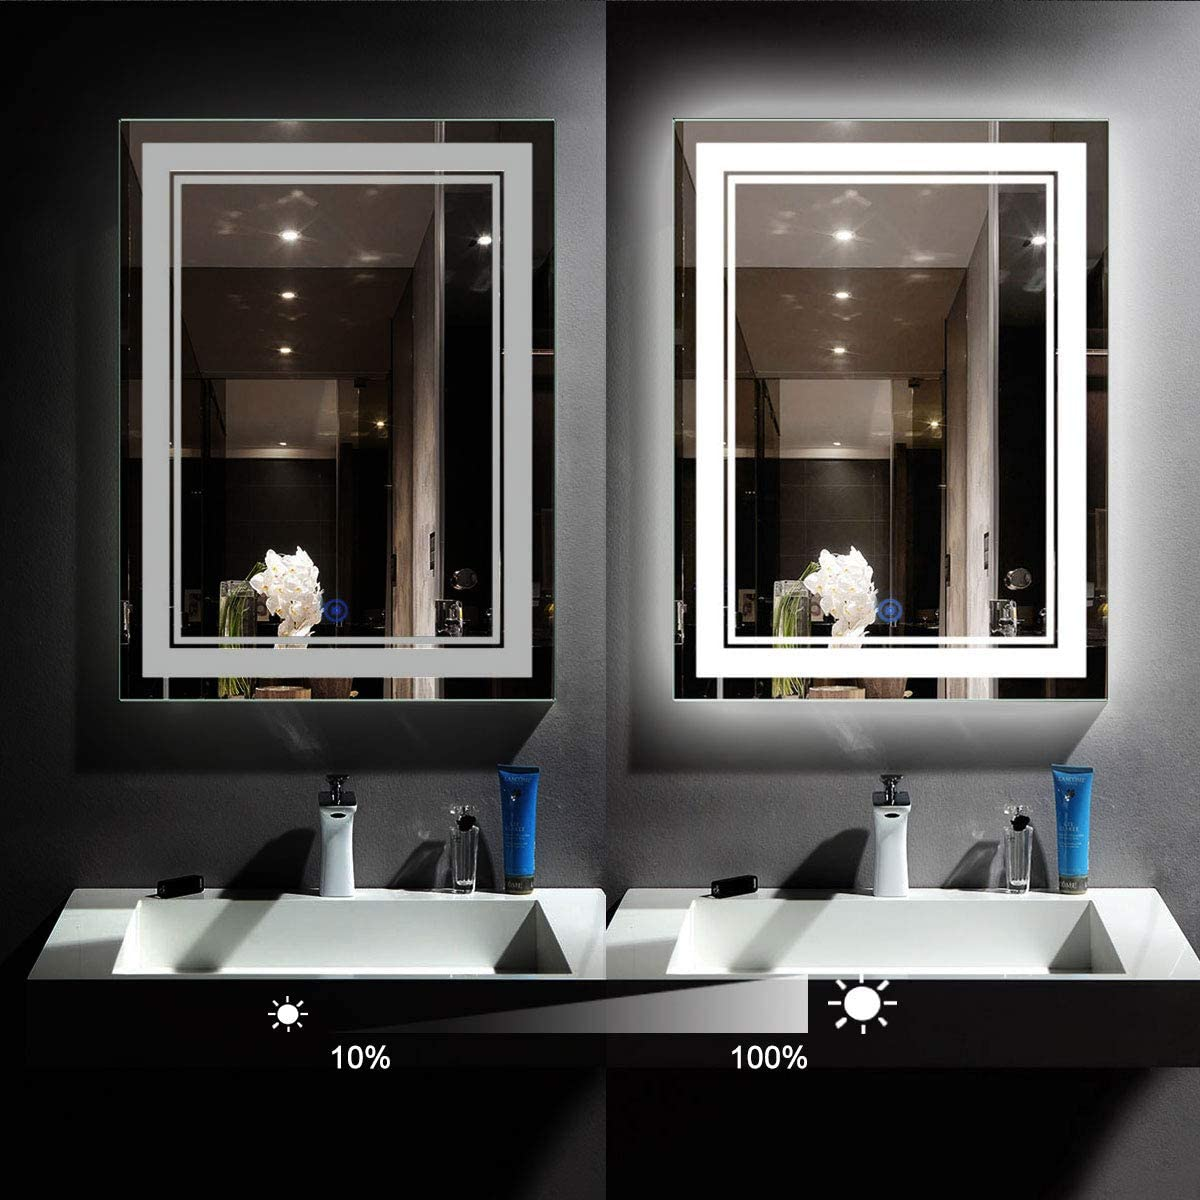 Amazon Com Vertical Led Lighted Vanity Bathroom Silvered Mirror With Touch Button Make Up Mirror Wall Bar Mirror Dk Od Ck160 Queen Home Kitchen